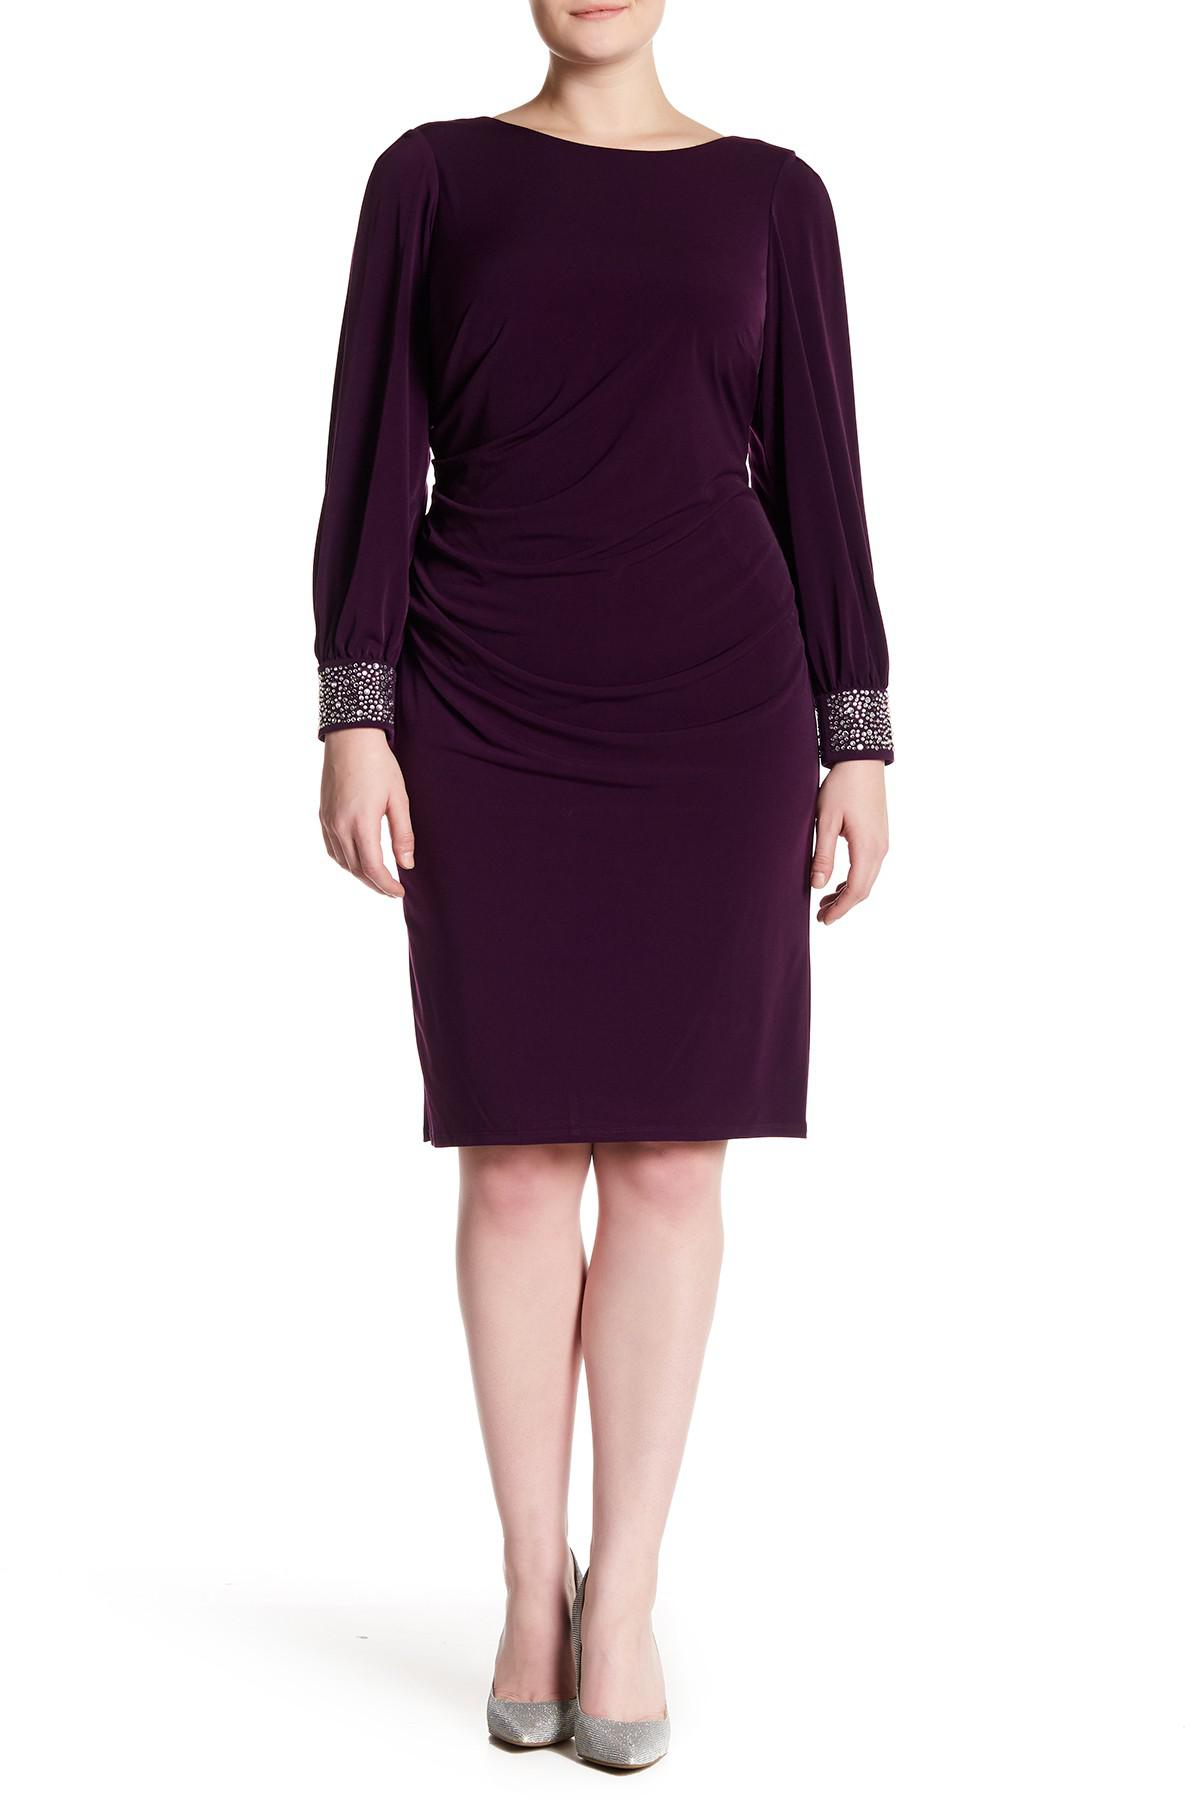 6edae7bfd91 Homecoming Dresses At Nordstrom Rack - Data Dynamic AG